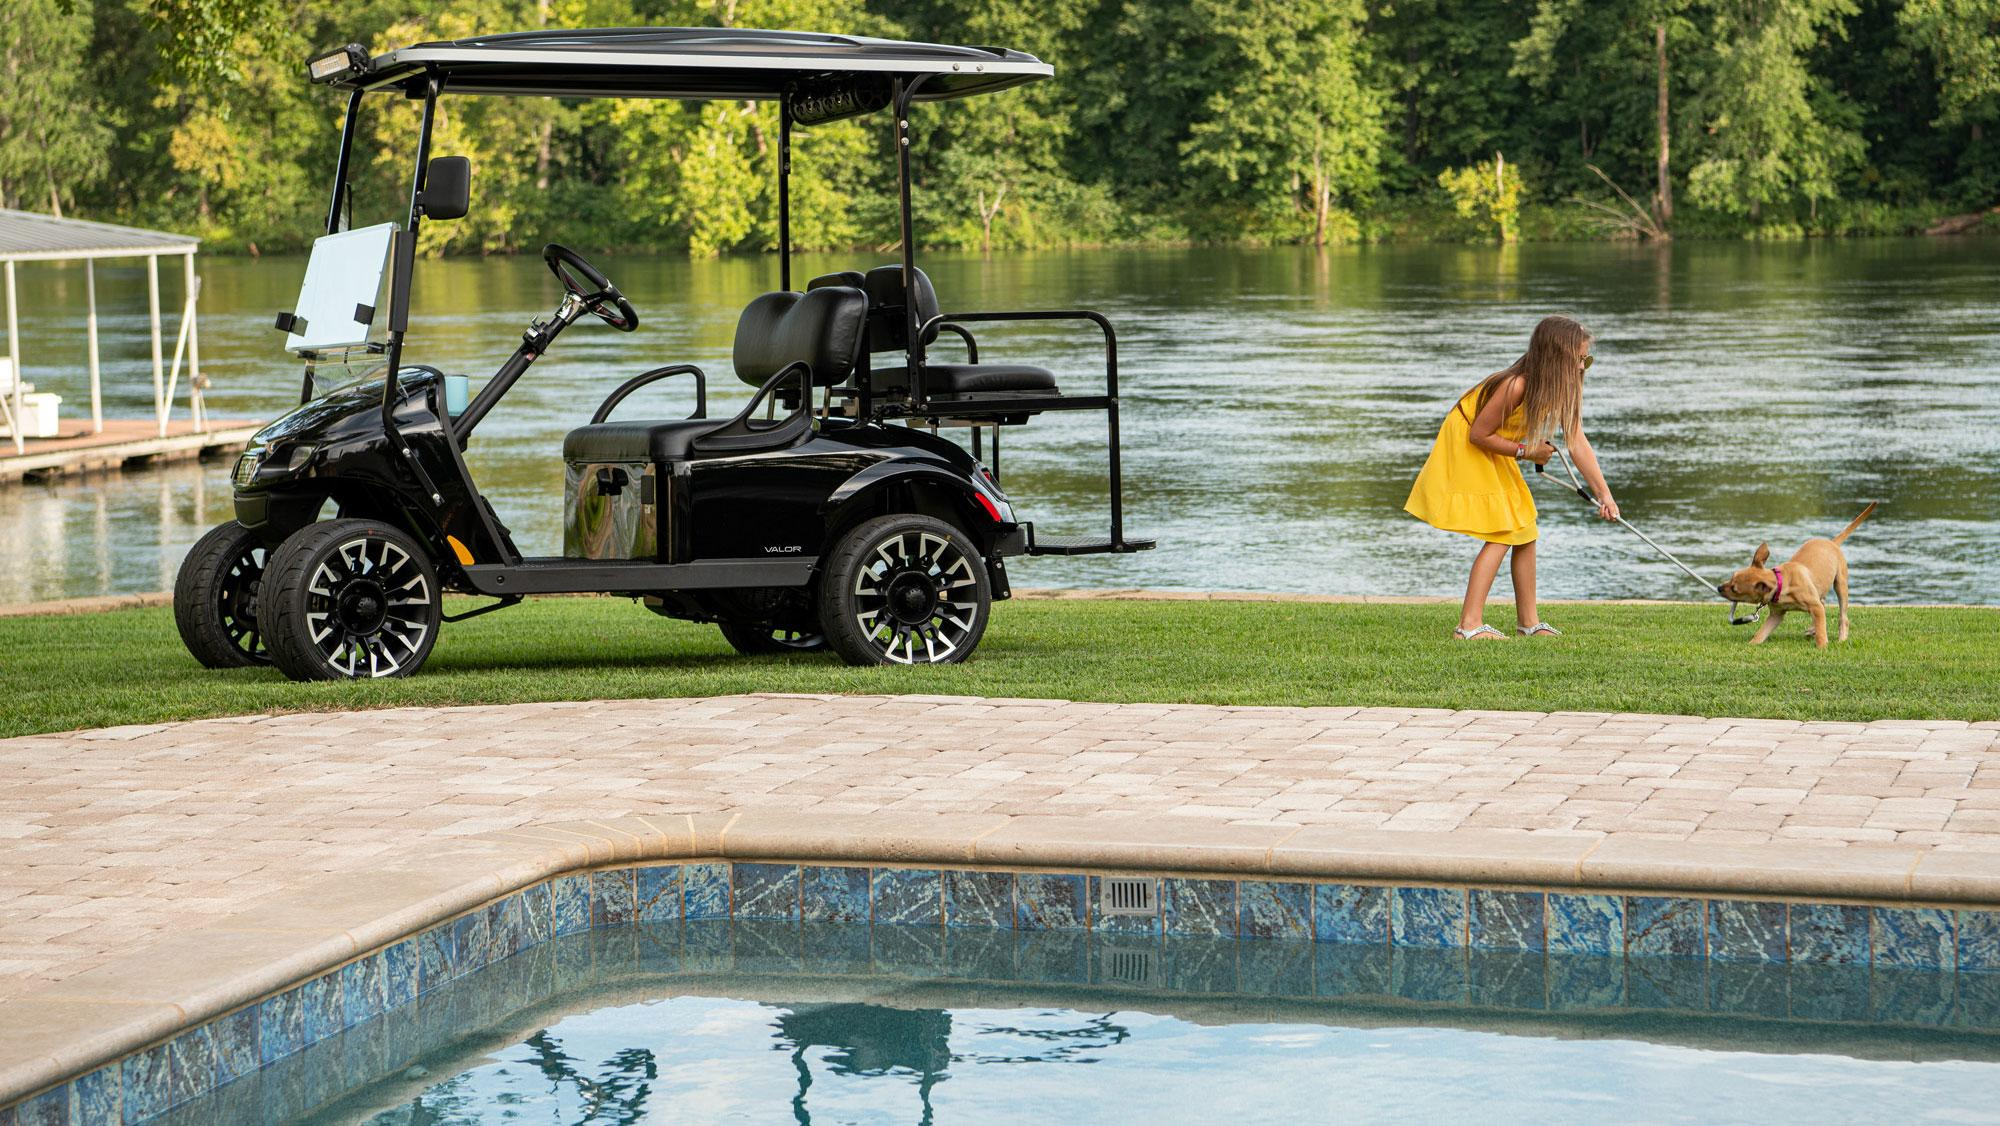 EZGO Black Valor Gas Golf Cart with speakers and windshield accessories